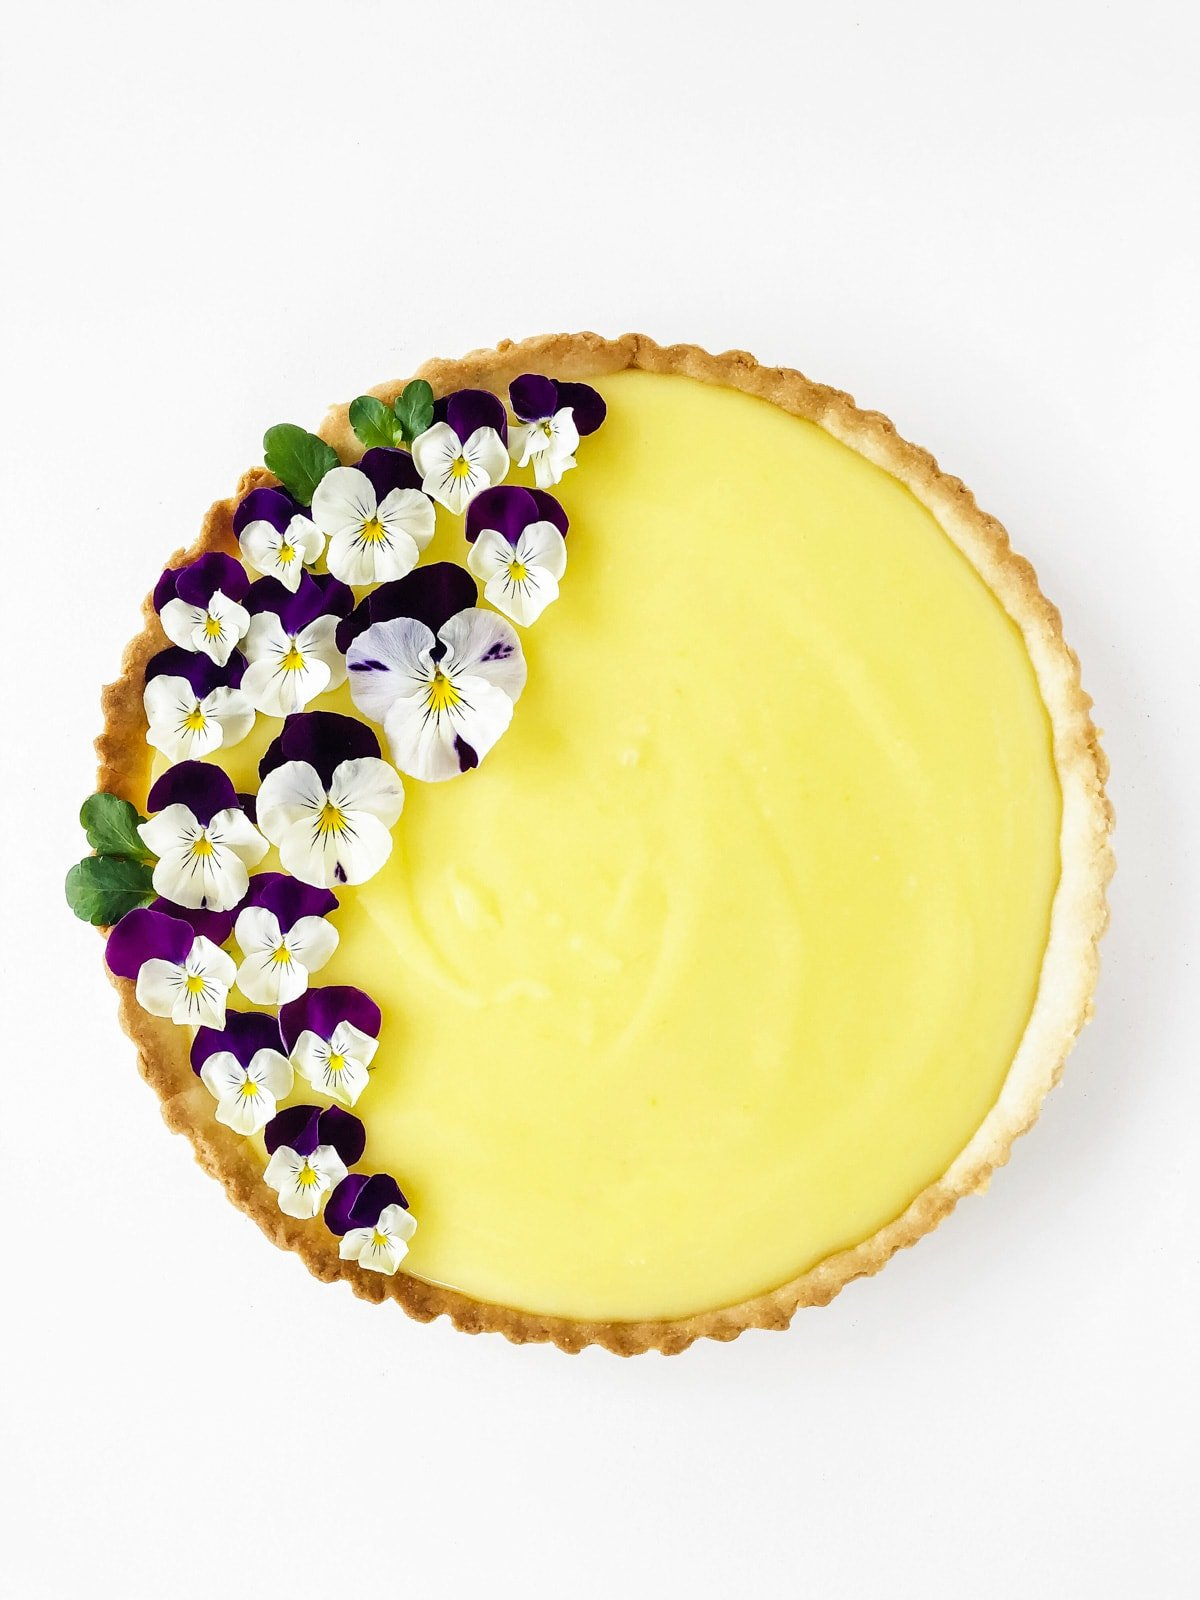 Lemon Tart garnished with Pansies